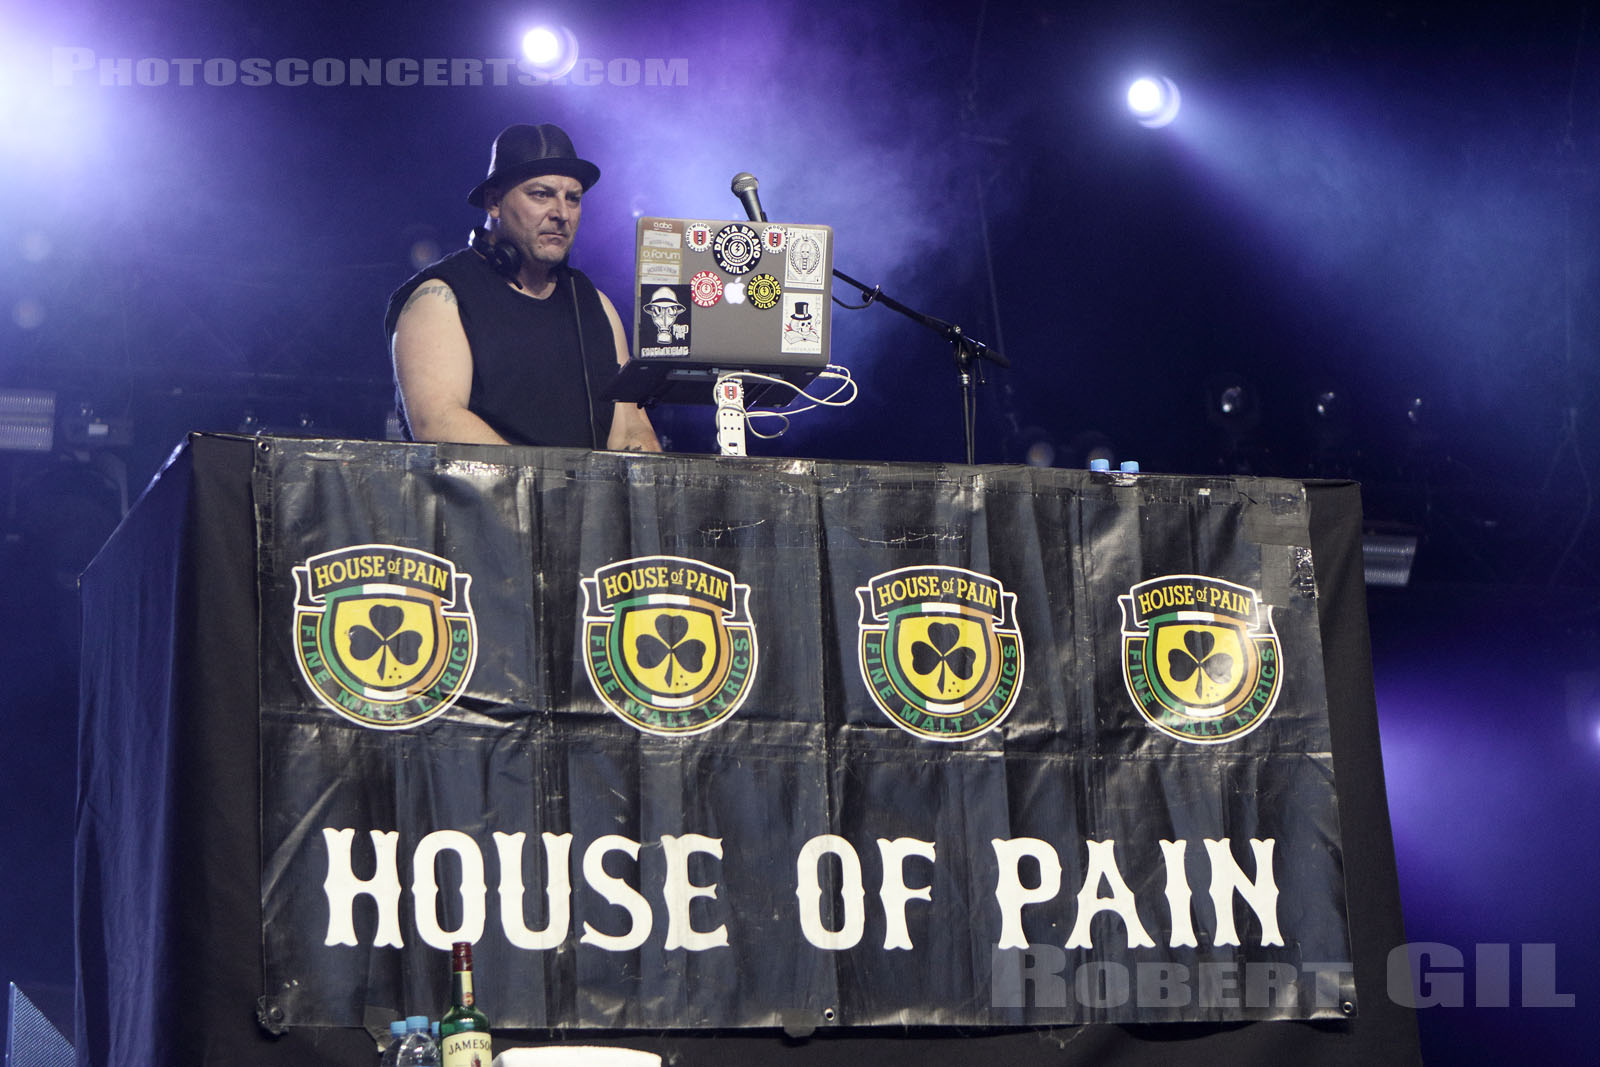 HOUSE OF PAIN - 2017-06-24 - PARIS - Hippodrome de Longchamp - Domino